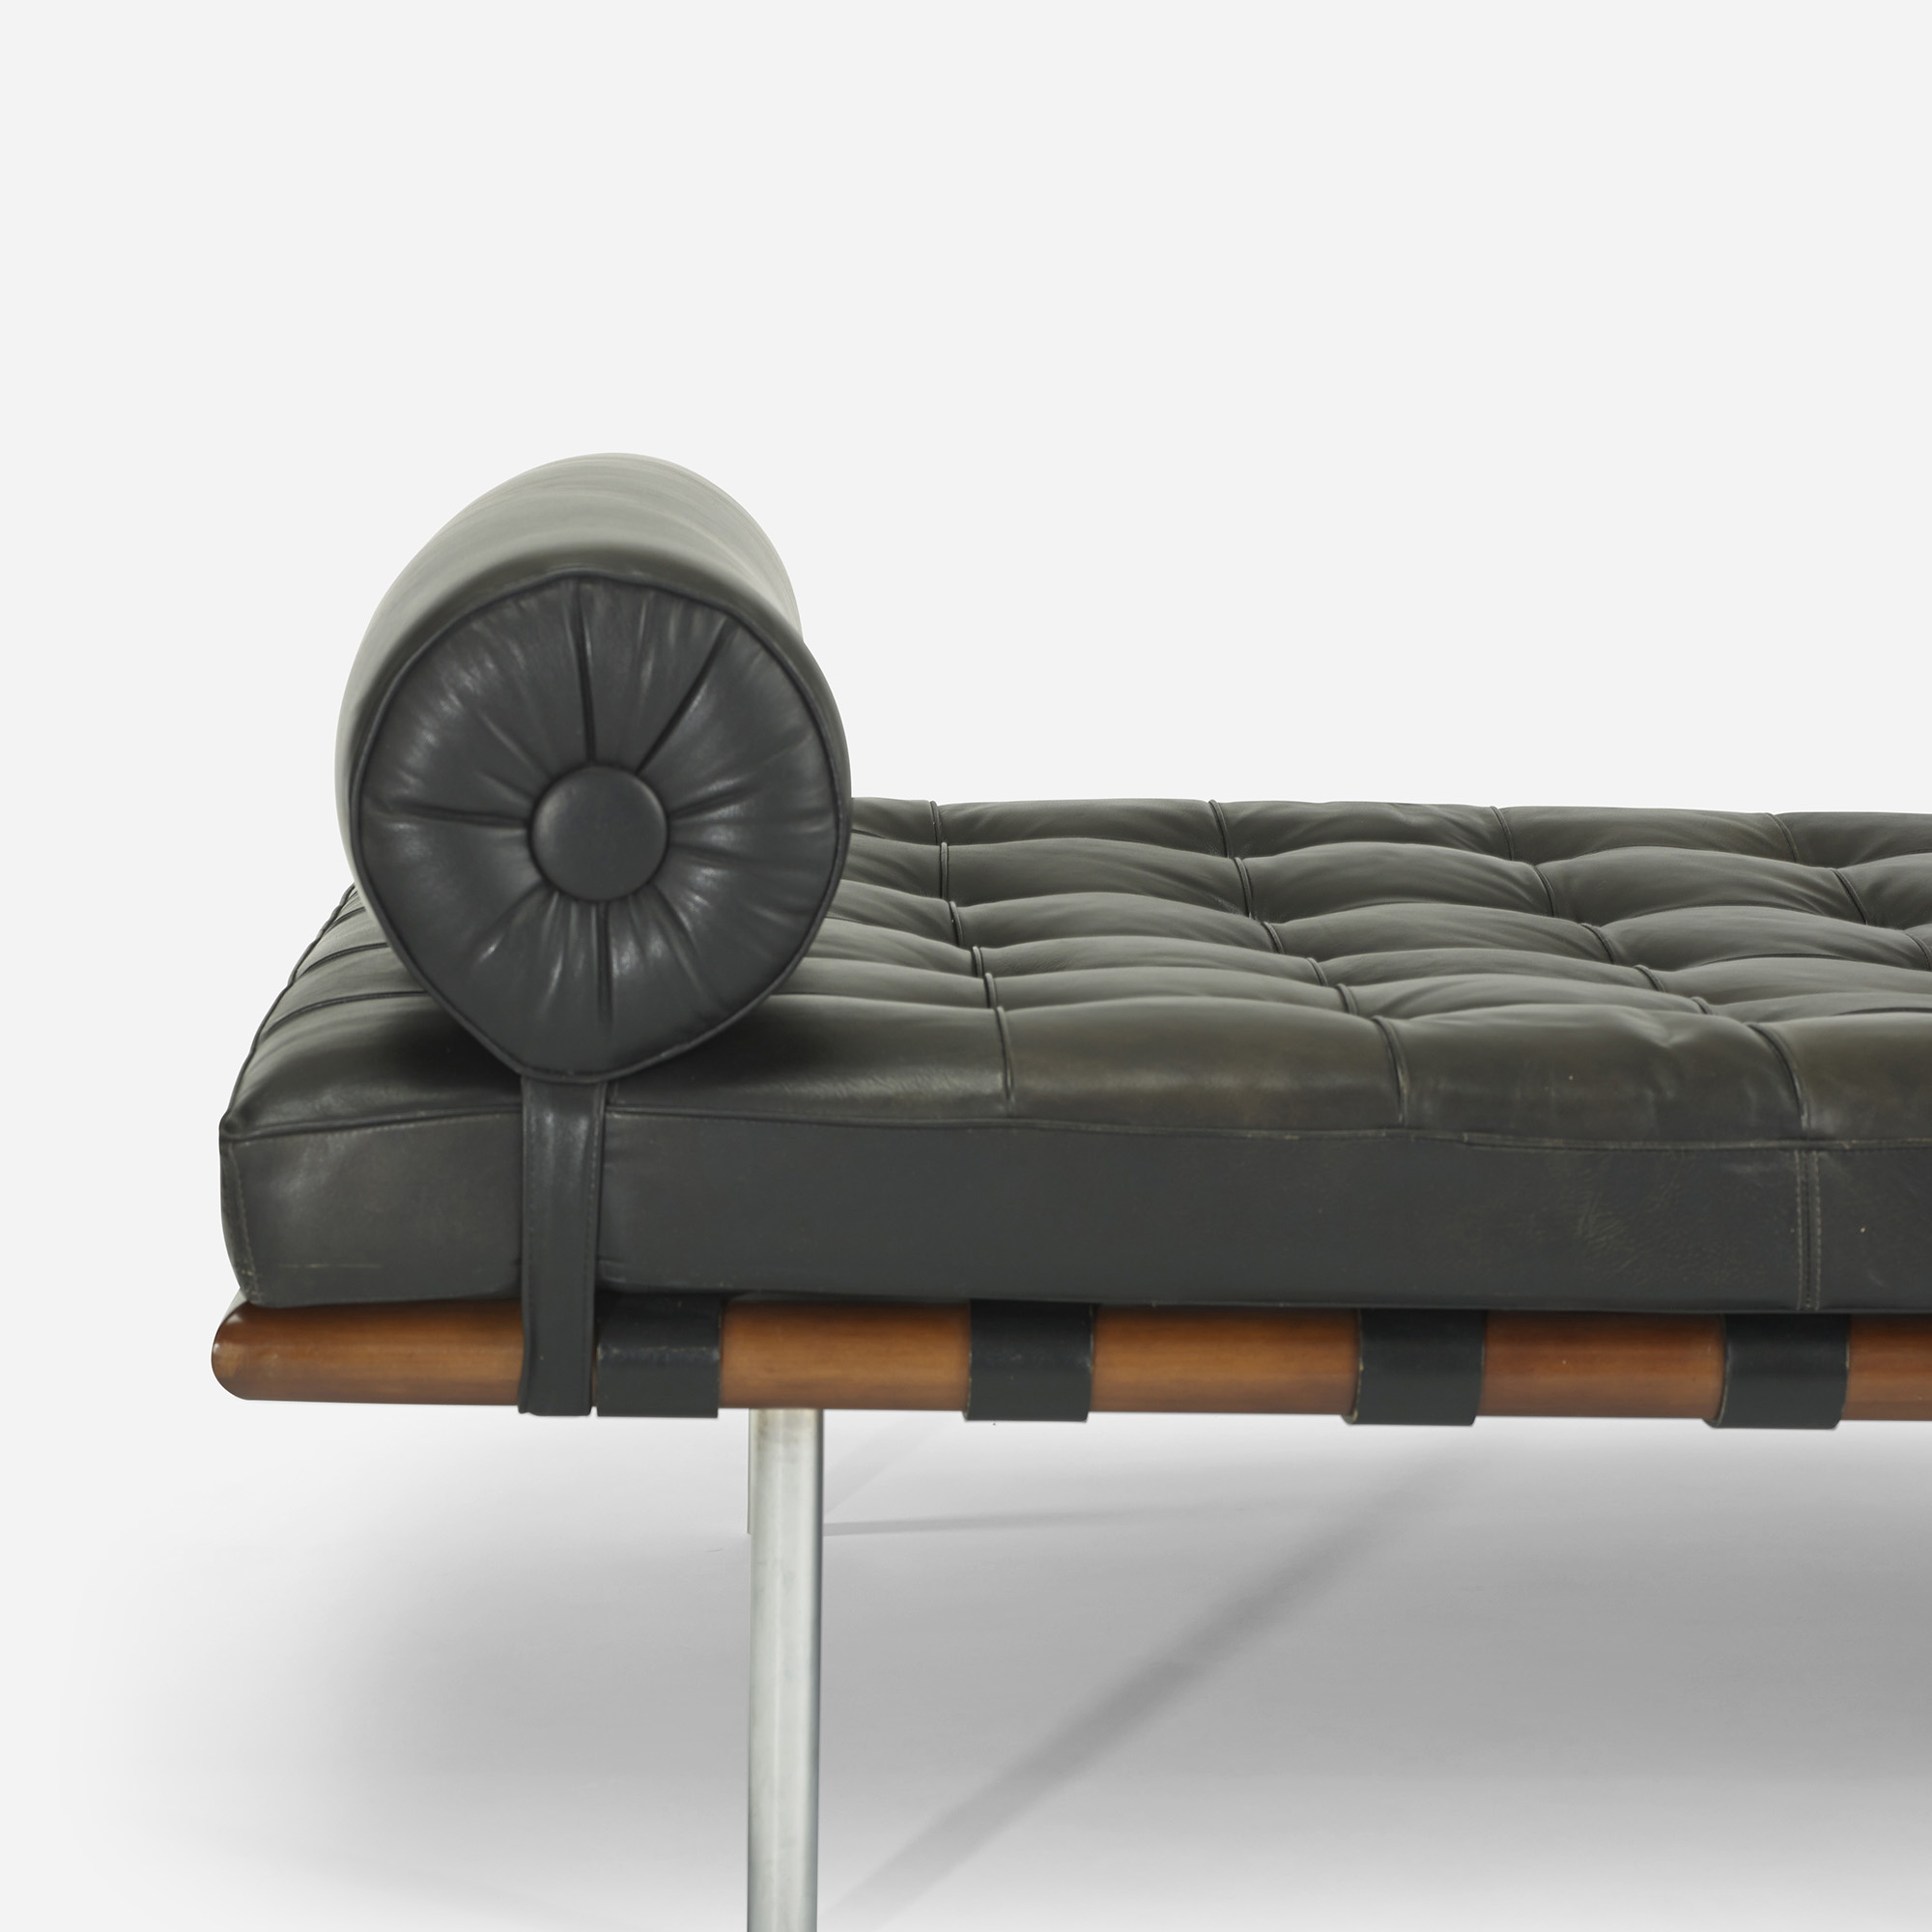 o and at barcelona alibaba showroom air suppliers space manufacturers com bed couch sofa